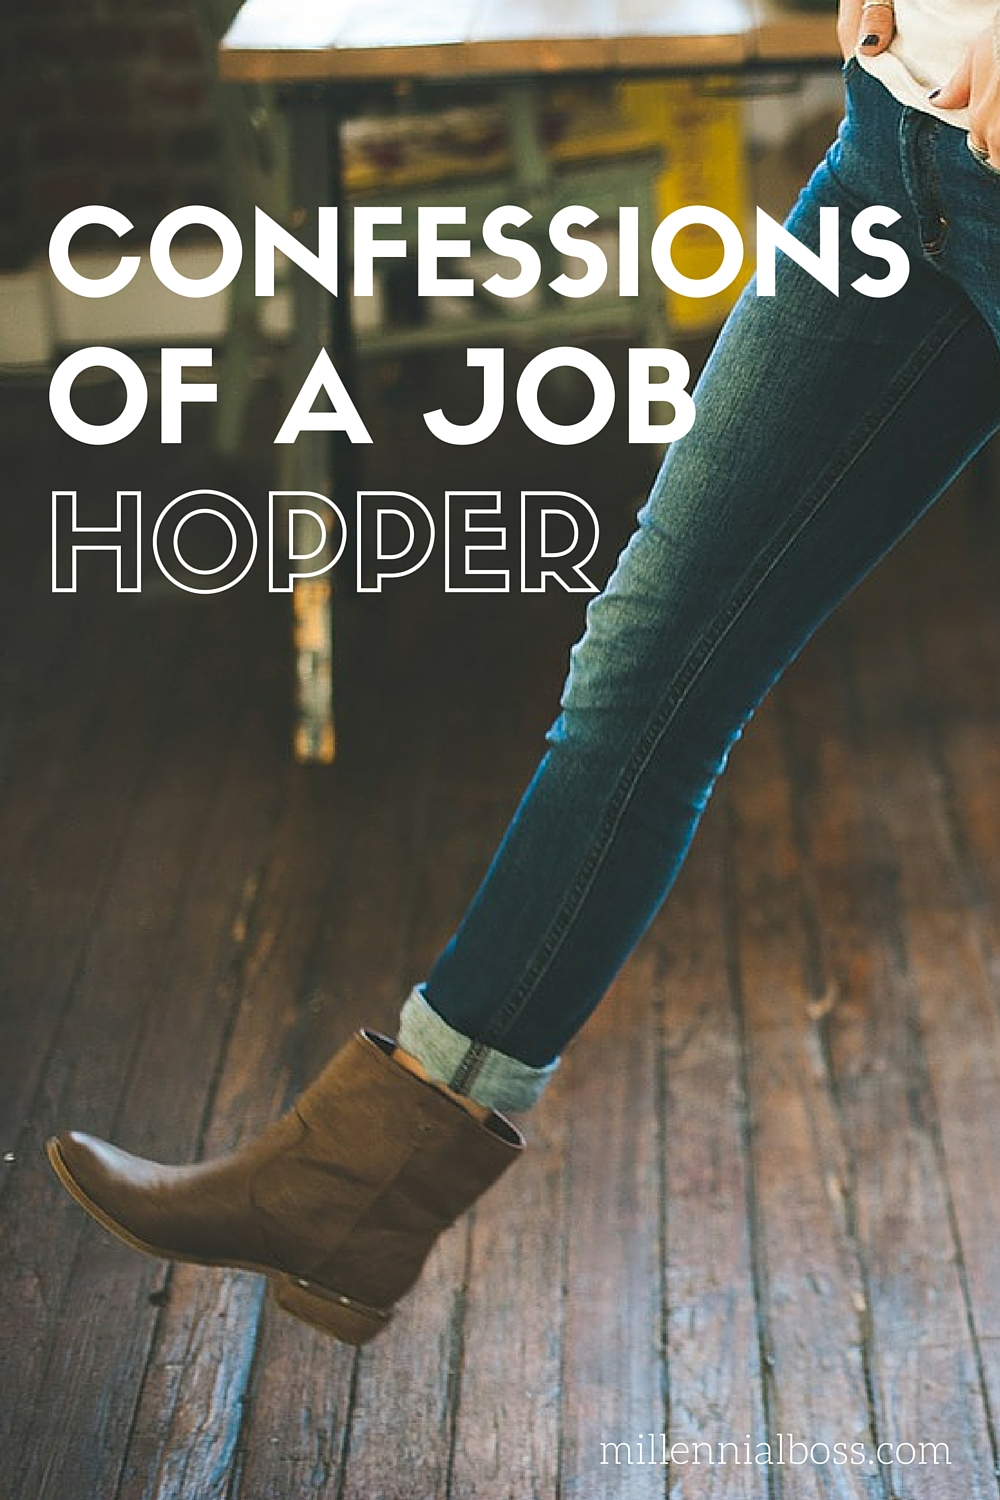 Confessions of a Job Hopping Millennial